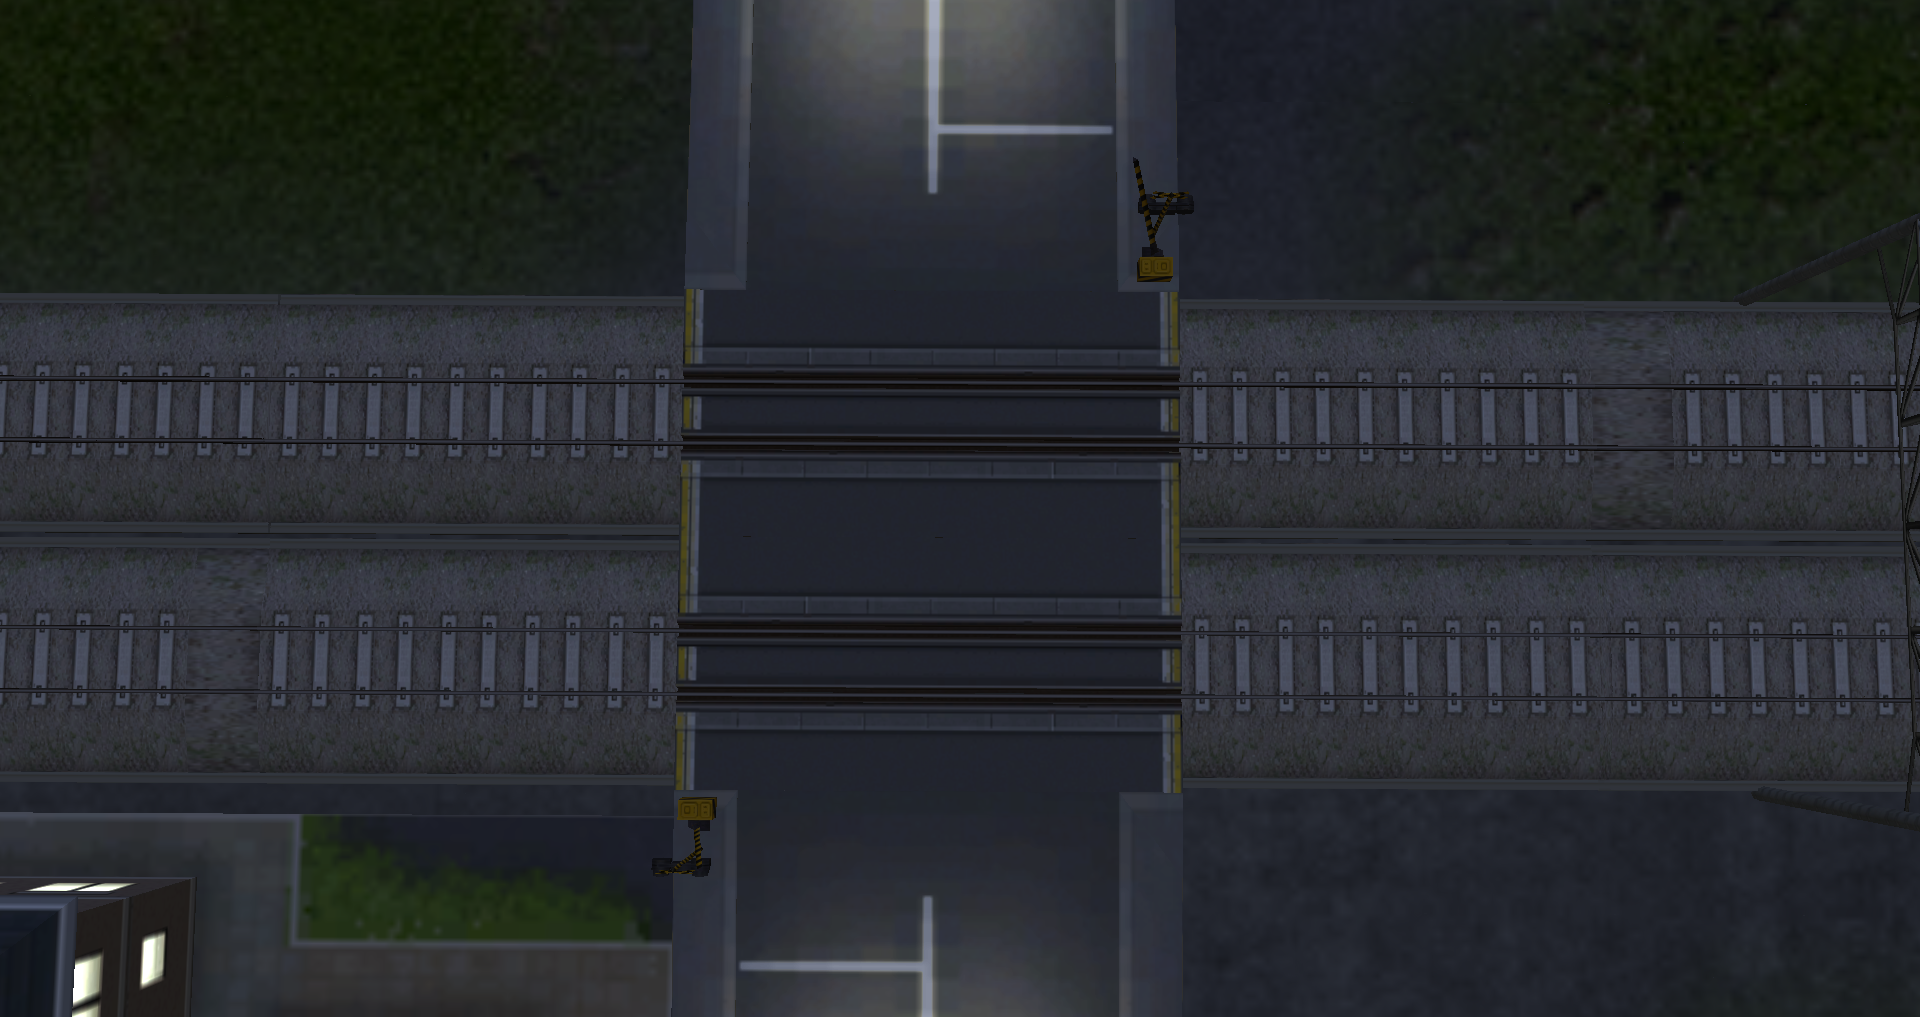 https://neorail.jp/forum/uploads/a9_crossing_and_expand_rail.png